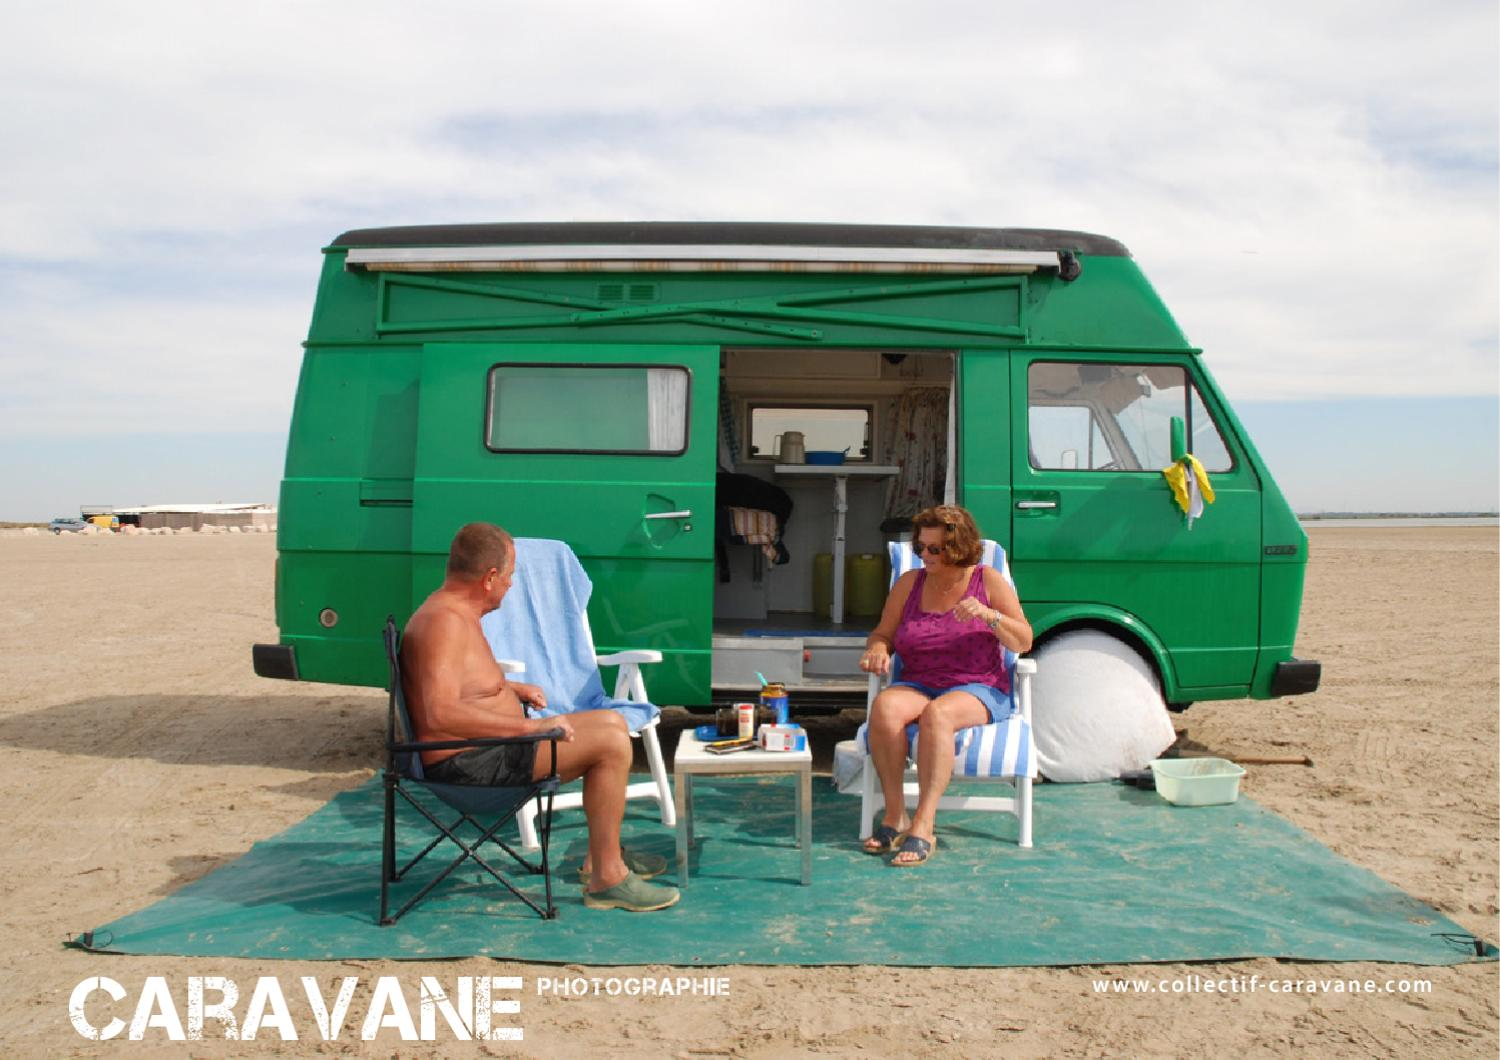 Caravane pi manson 2010 by anne ransquin issuu for Au jardin d ozanne